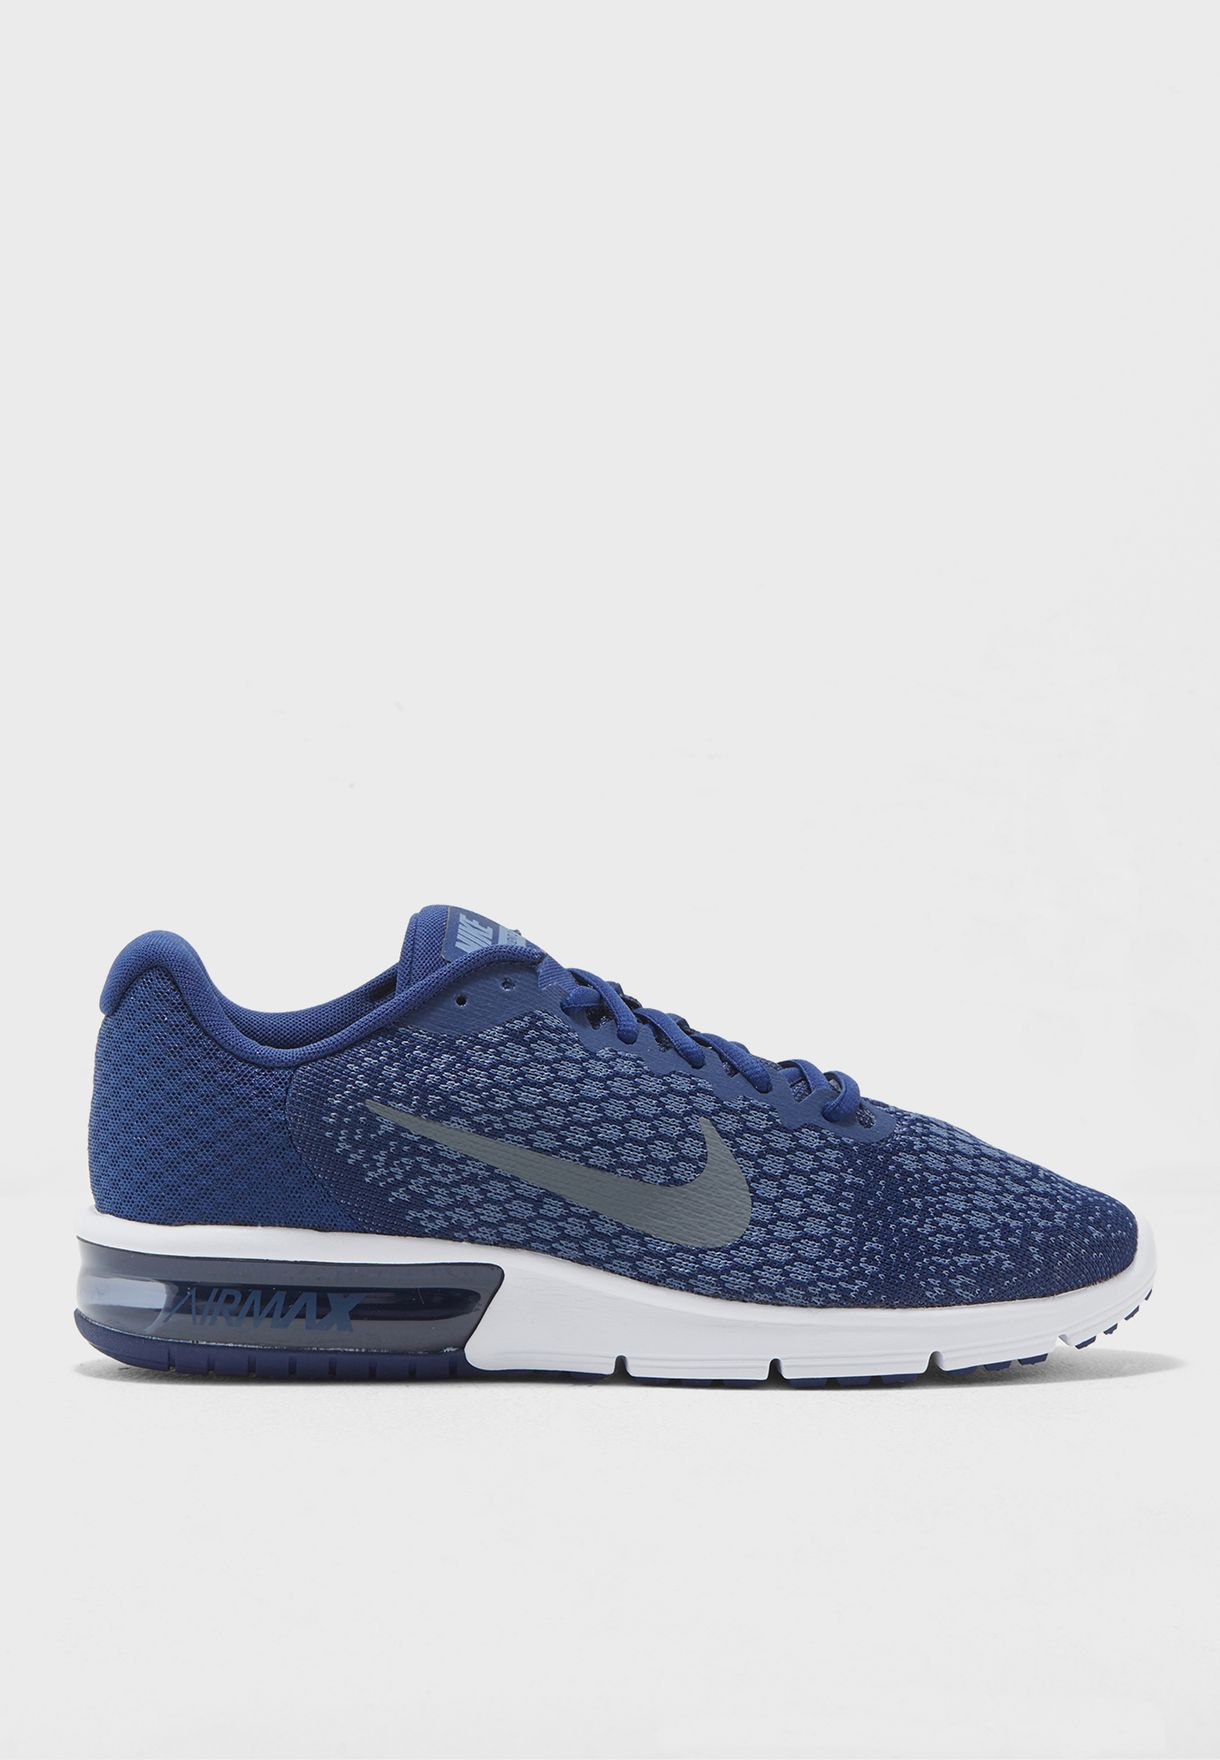 81e22c1fcd Shop Nike navy Air Max Sequent 2 852461-406 for Men in UAE ...